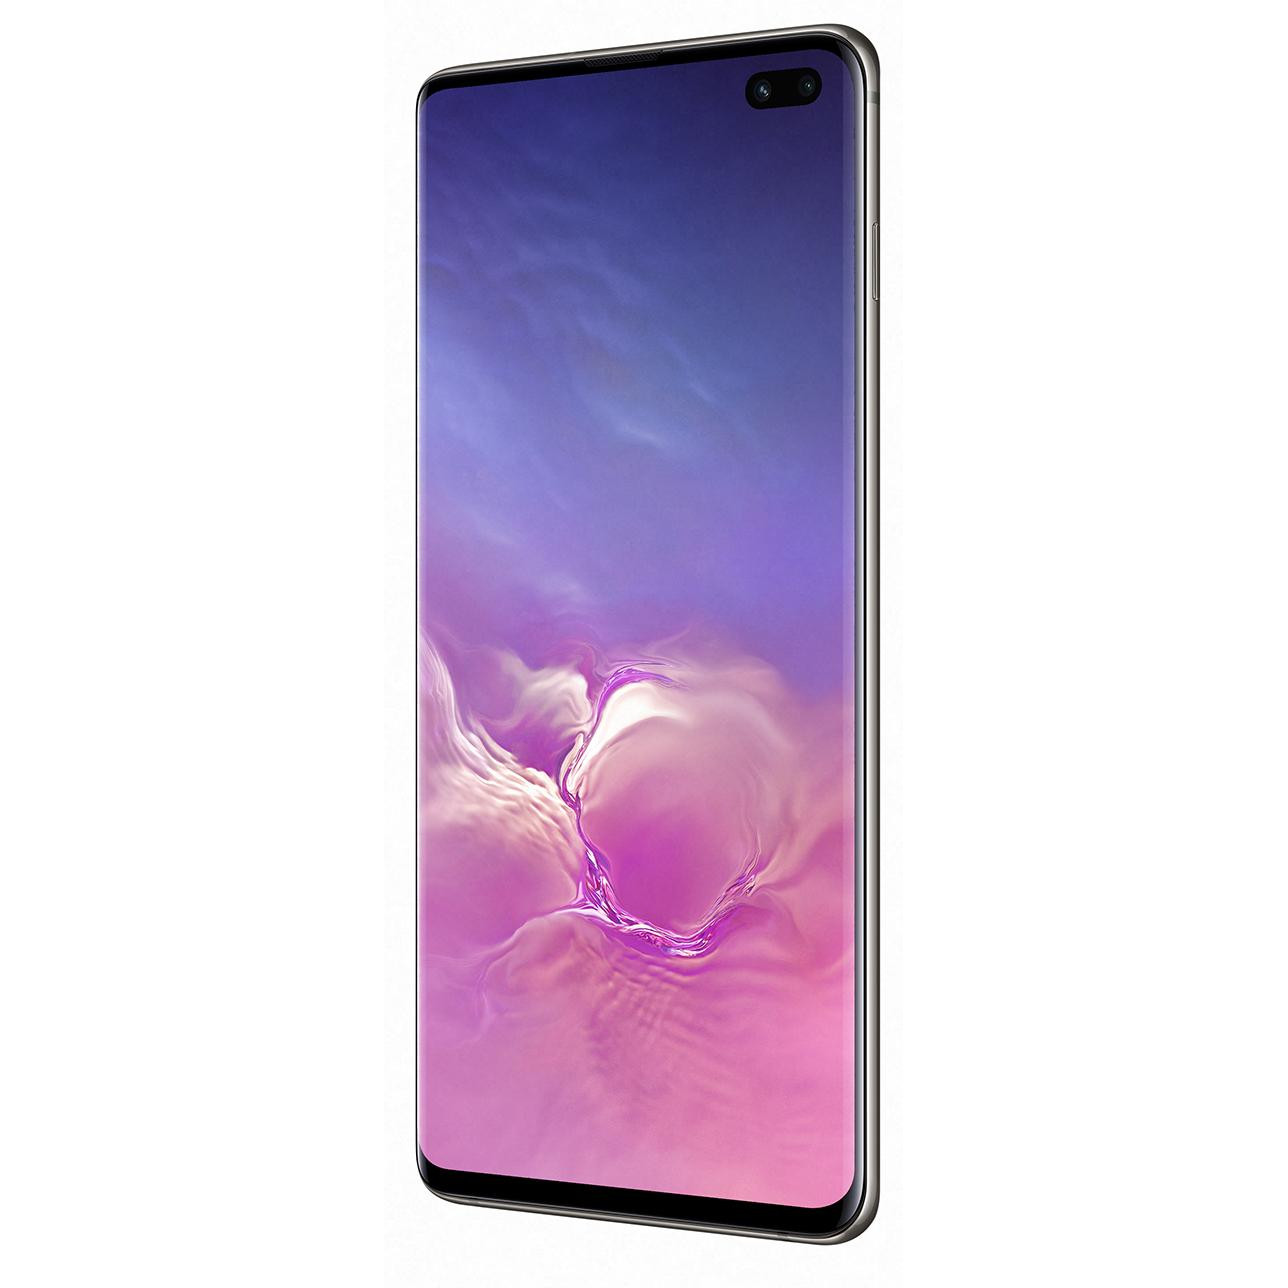 e48c715eb4671 Samsung Galaxy S10 Plus SM-G975 DS 128GB Black (SM-G975FZKD) купить в  интернет-магазине: цены на смартфон Samsung Galaxy S10 Plus SM-G975 DS 128GB  Black ...